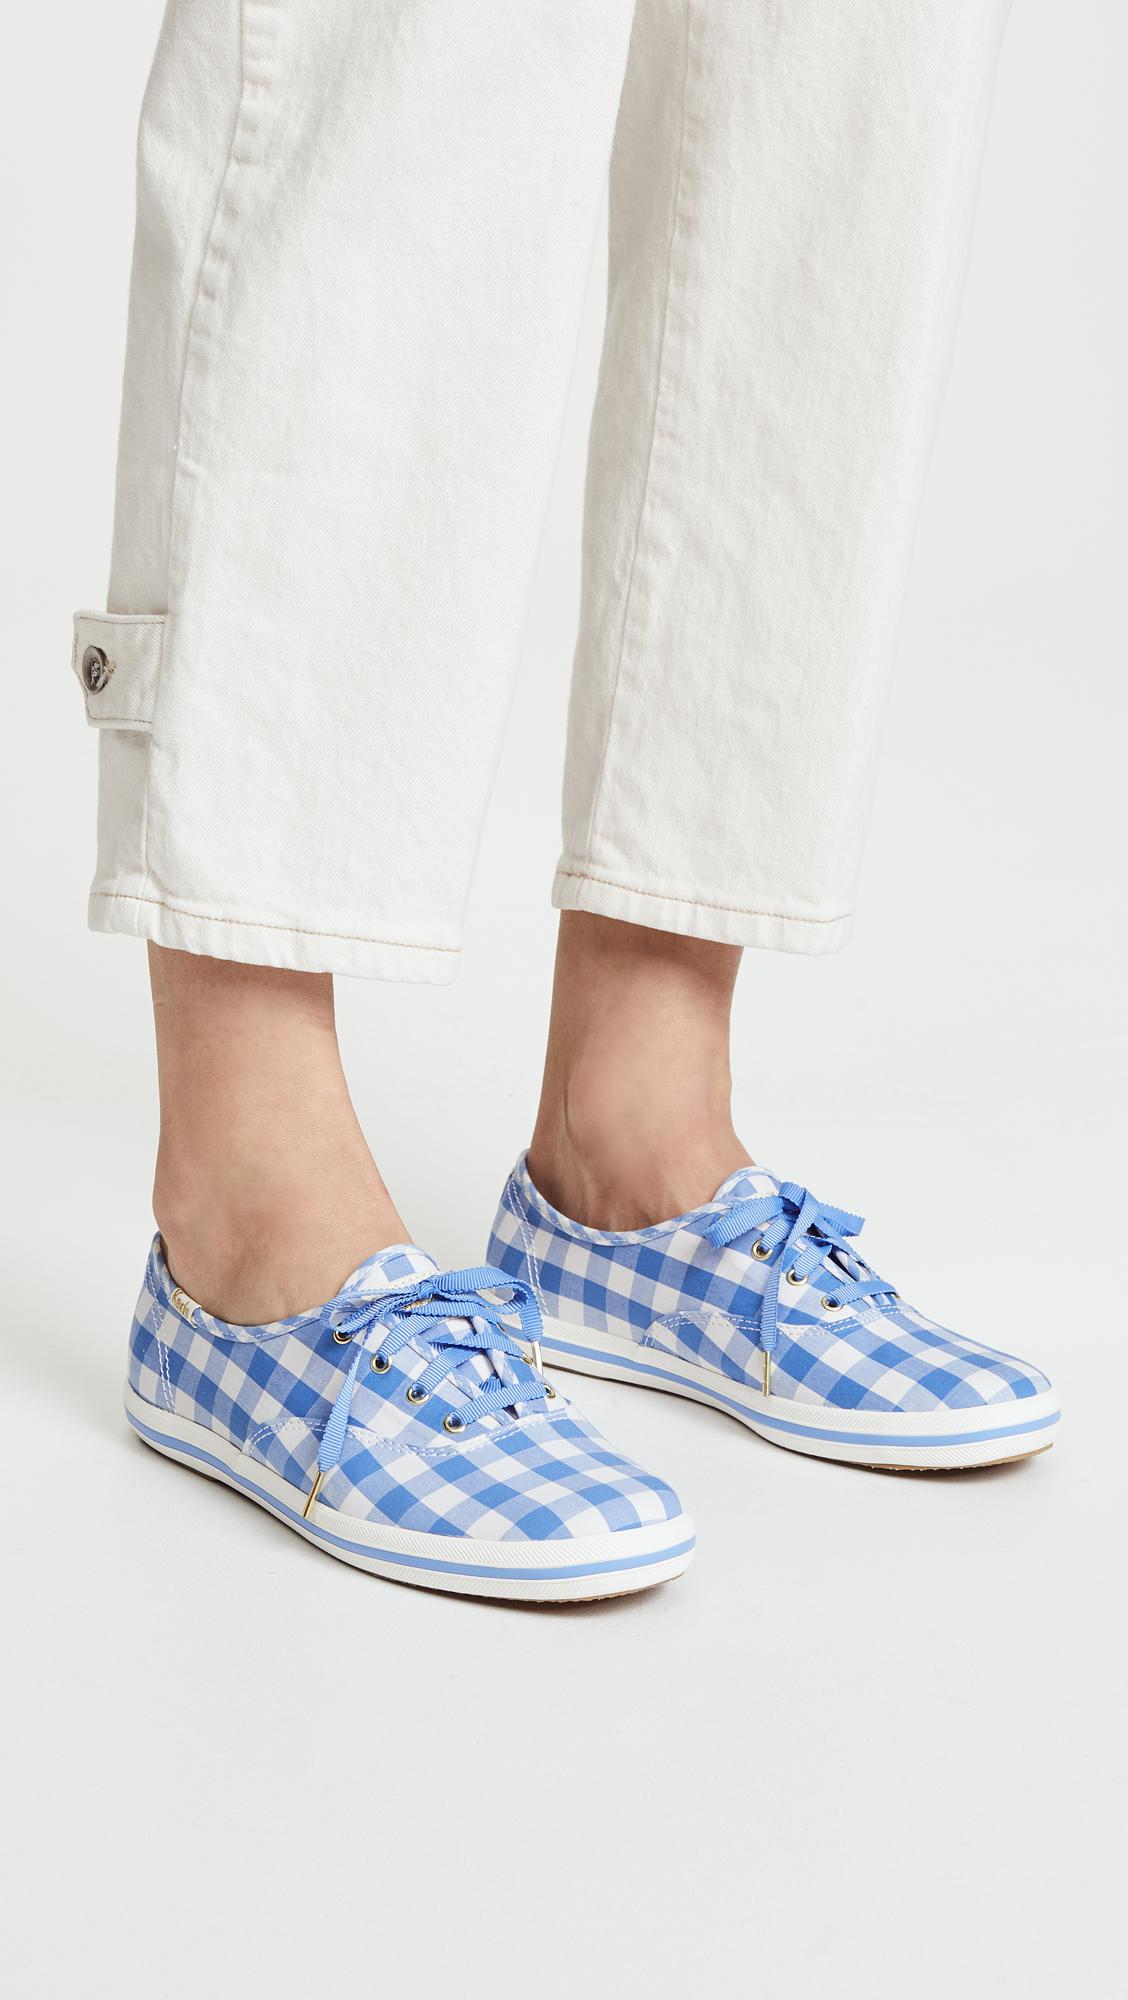 9283953e0aa56 Lyst - Keds X Kate Spade New York Gingham Sneakers in Blue